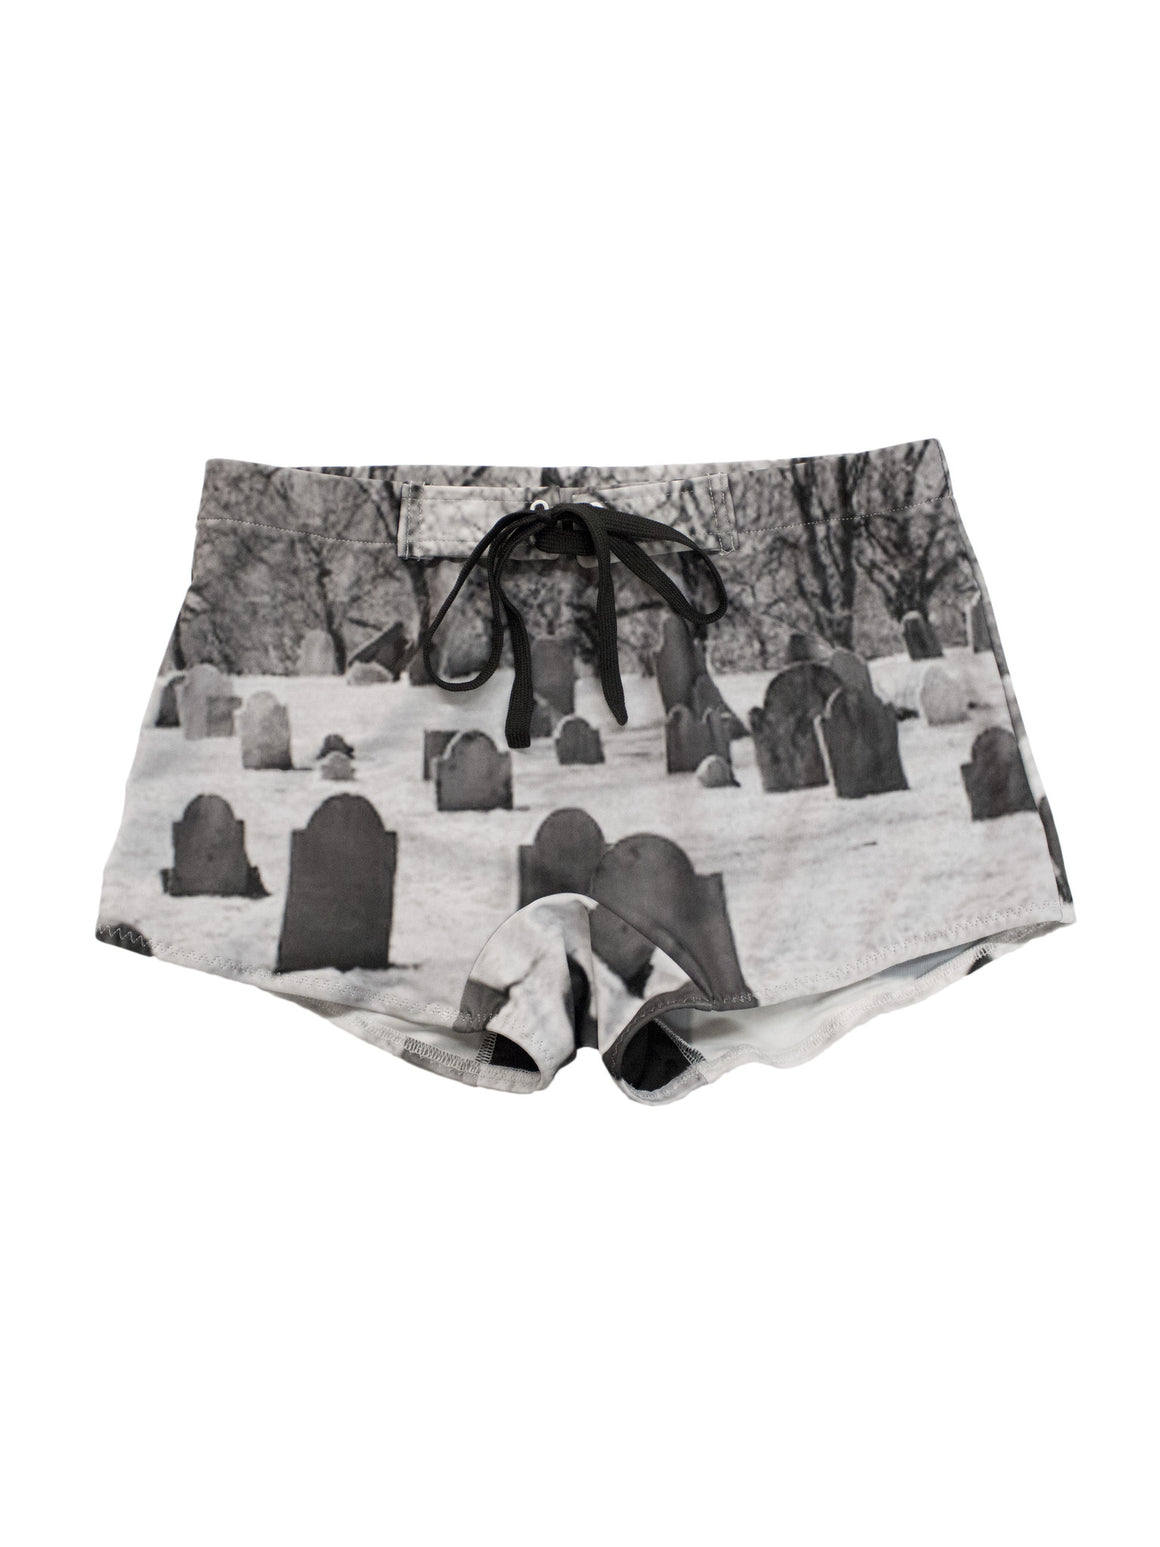 Graveyard Swim Trunk